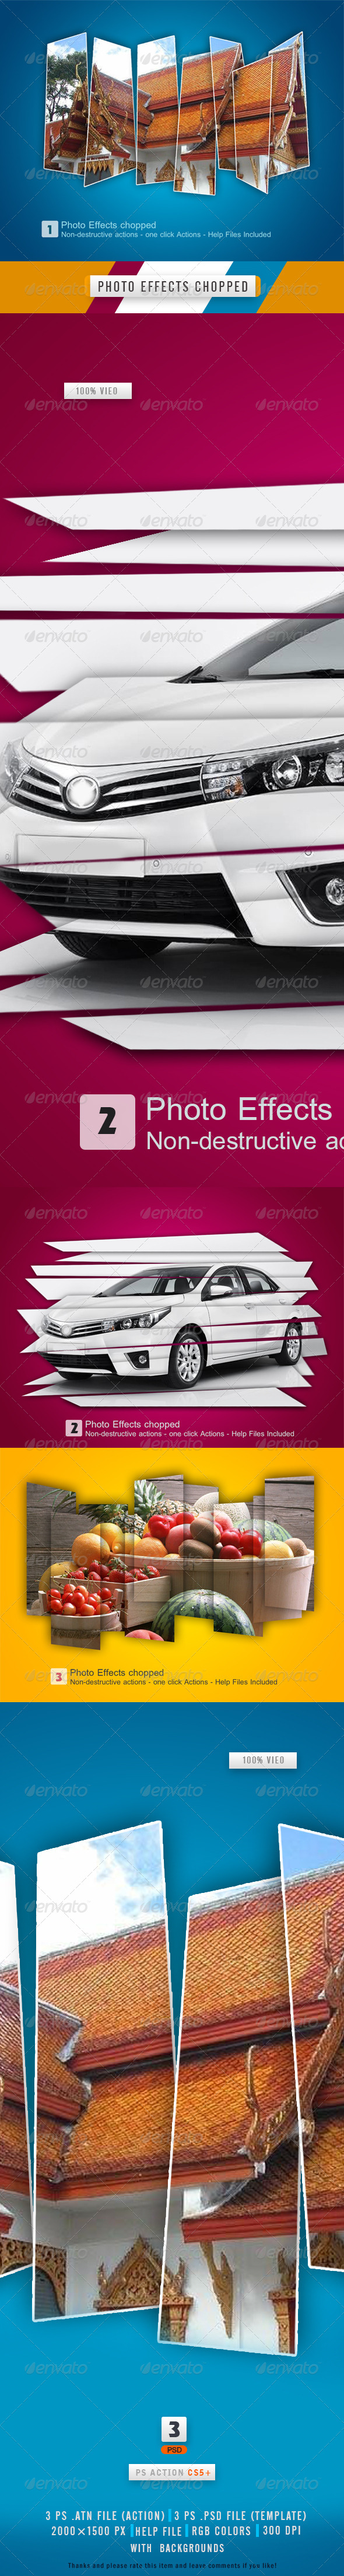 GraphicRiver Photo Effects Choppy 8610304